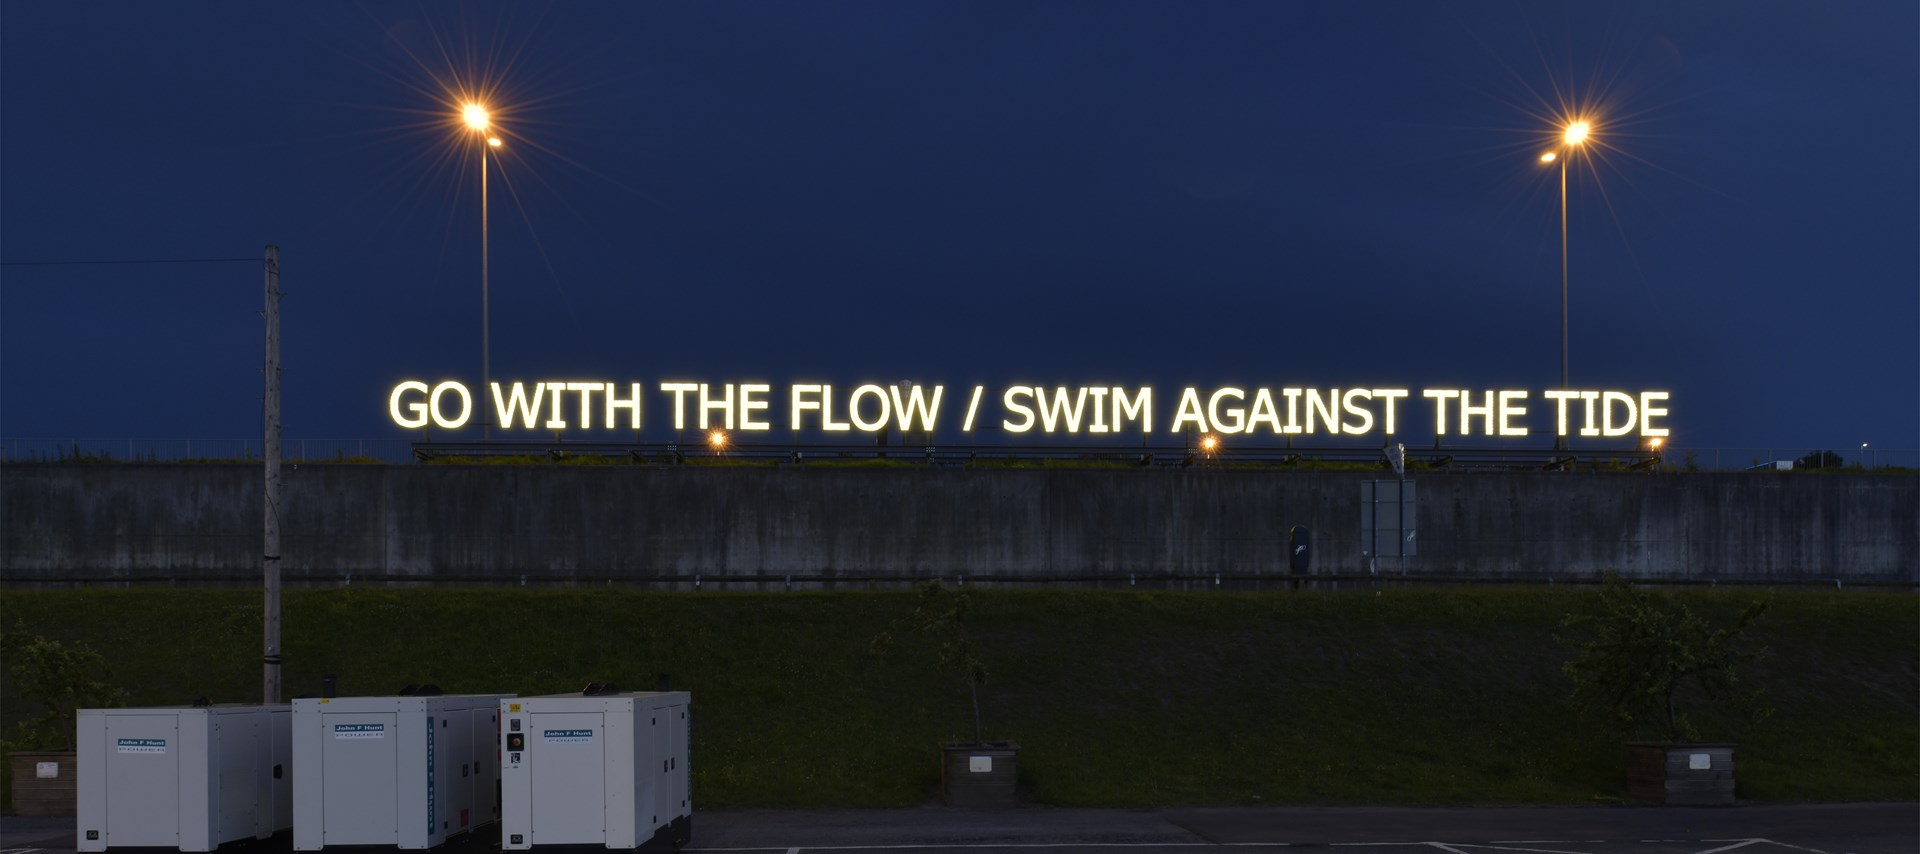 Tim Etchells: With/Against, 2018. Photo: Jonty Wilde © BALTIC